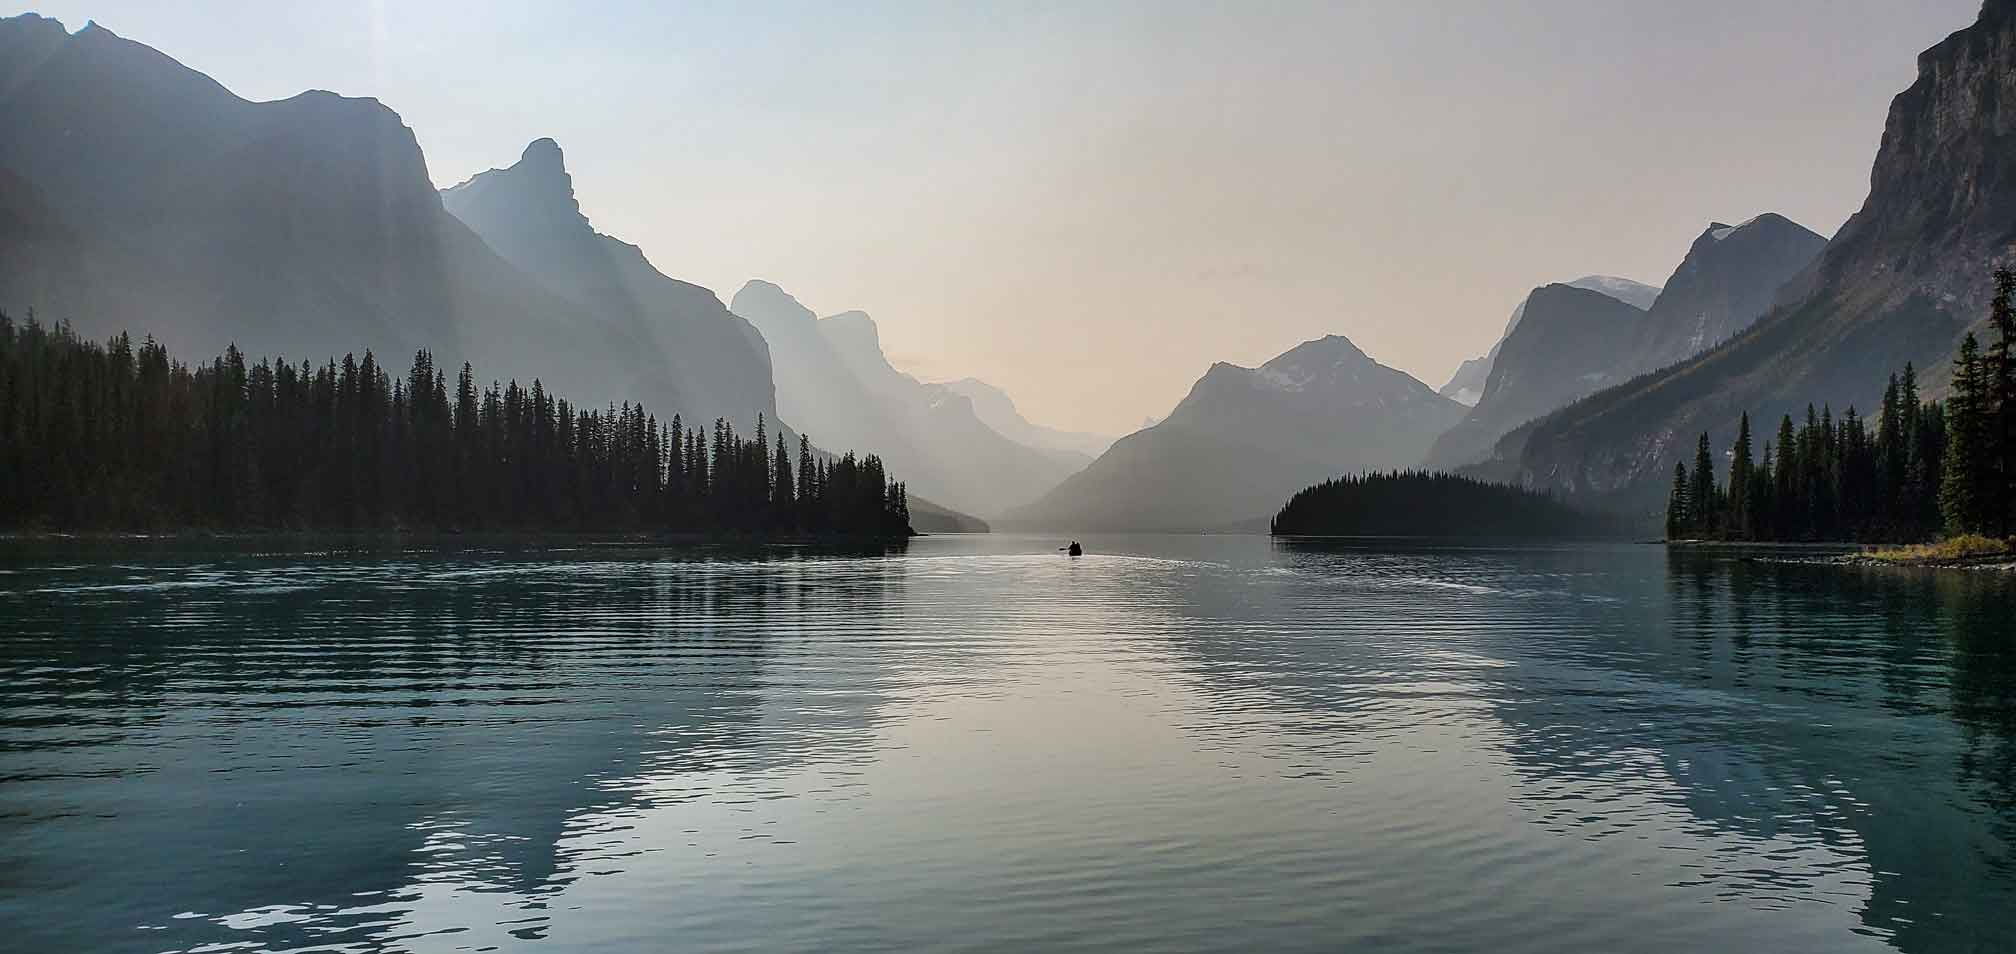 A Day on the Water: Summer in the Canadian Rockies on Where Rockies